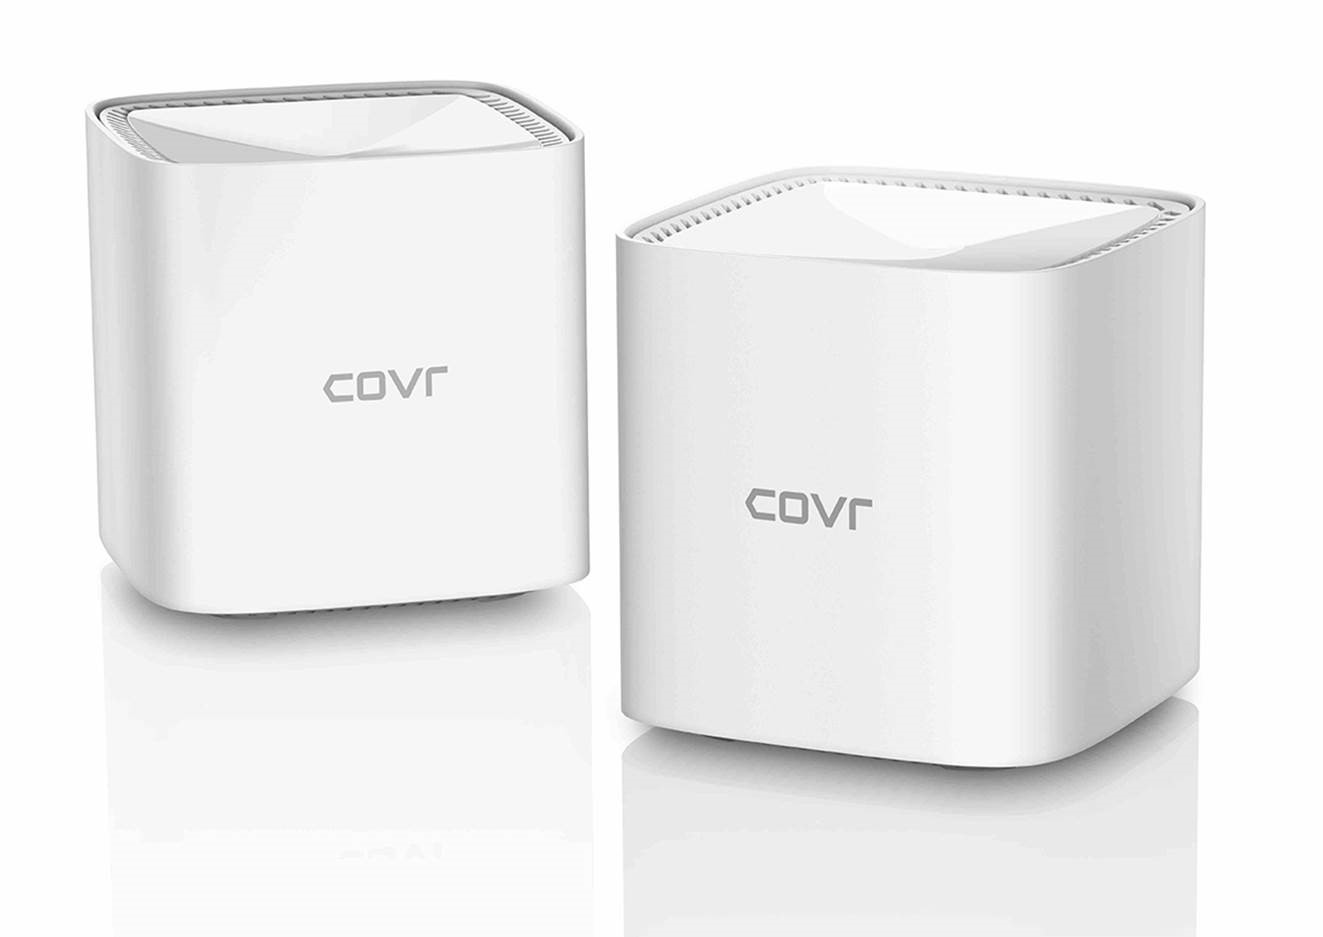 COVR 1102 Mesh Wi Fi Patchy Internet? D Link Launches COVR 1102 Seamless Mesh Wi Fi For Better Coverage